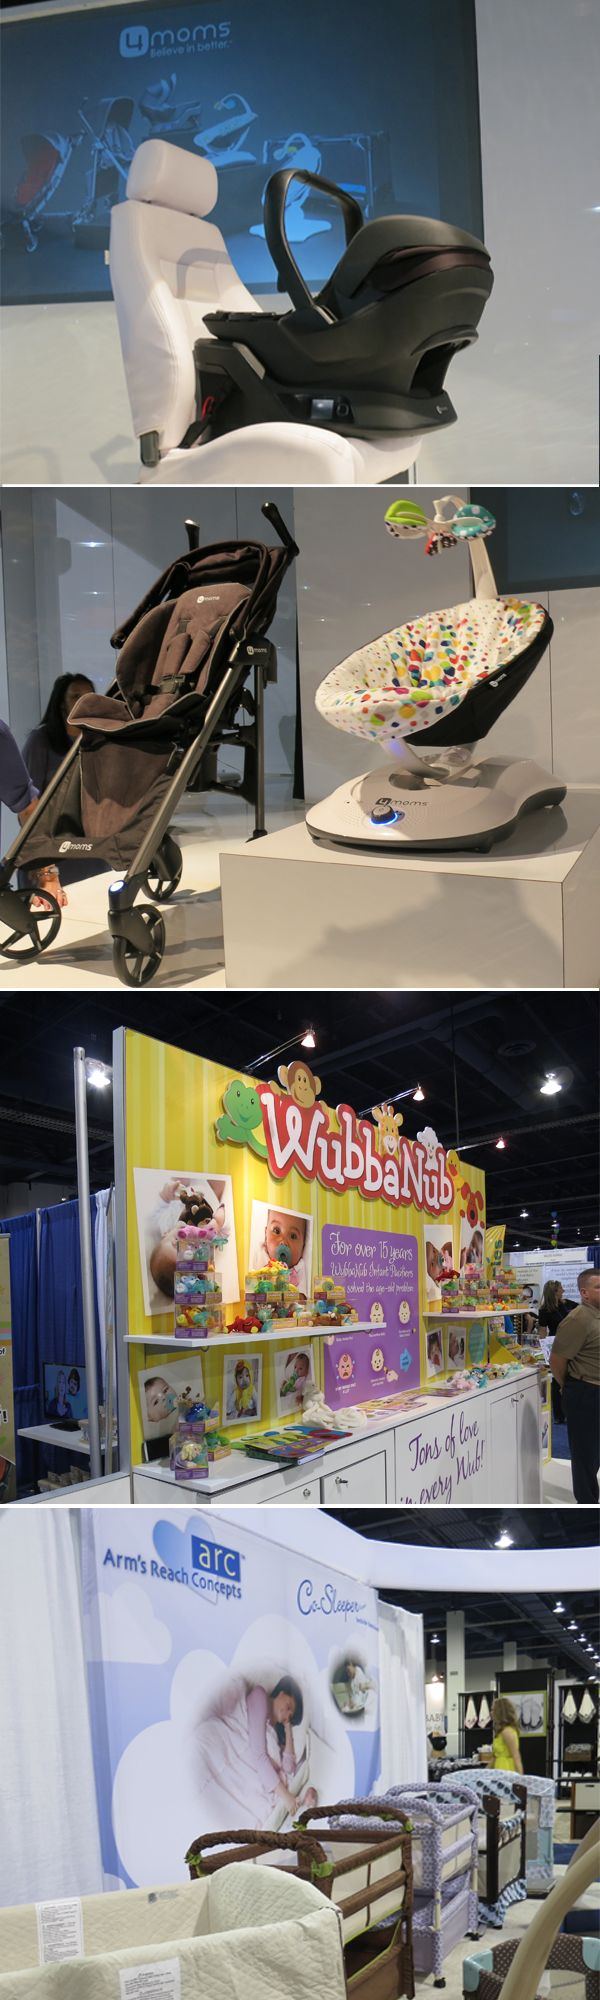 9 best ABC Expo 2013 images on Pinterest | Baby baby, Baby boy and ...